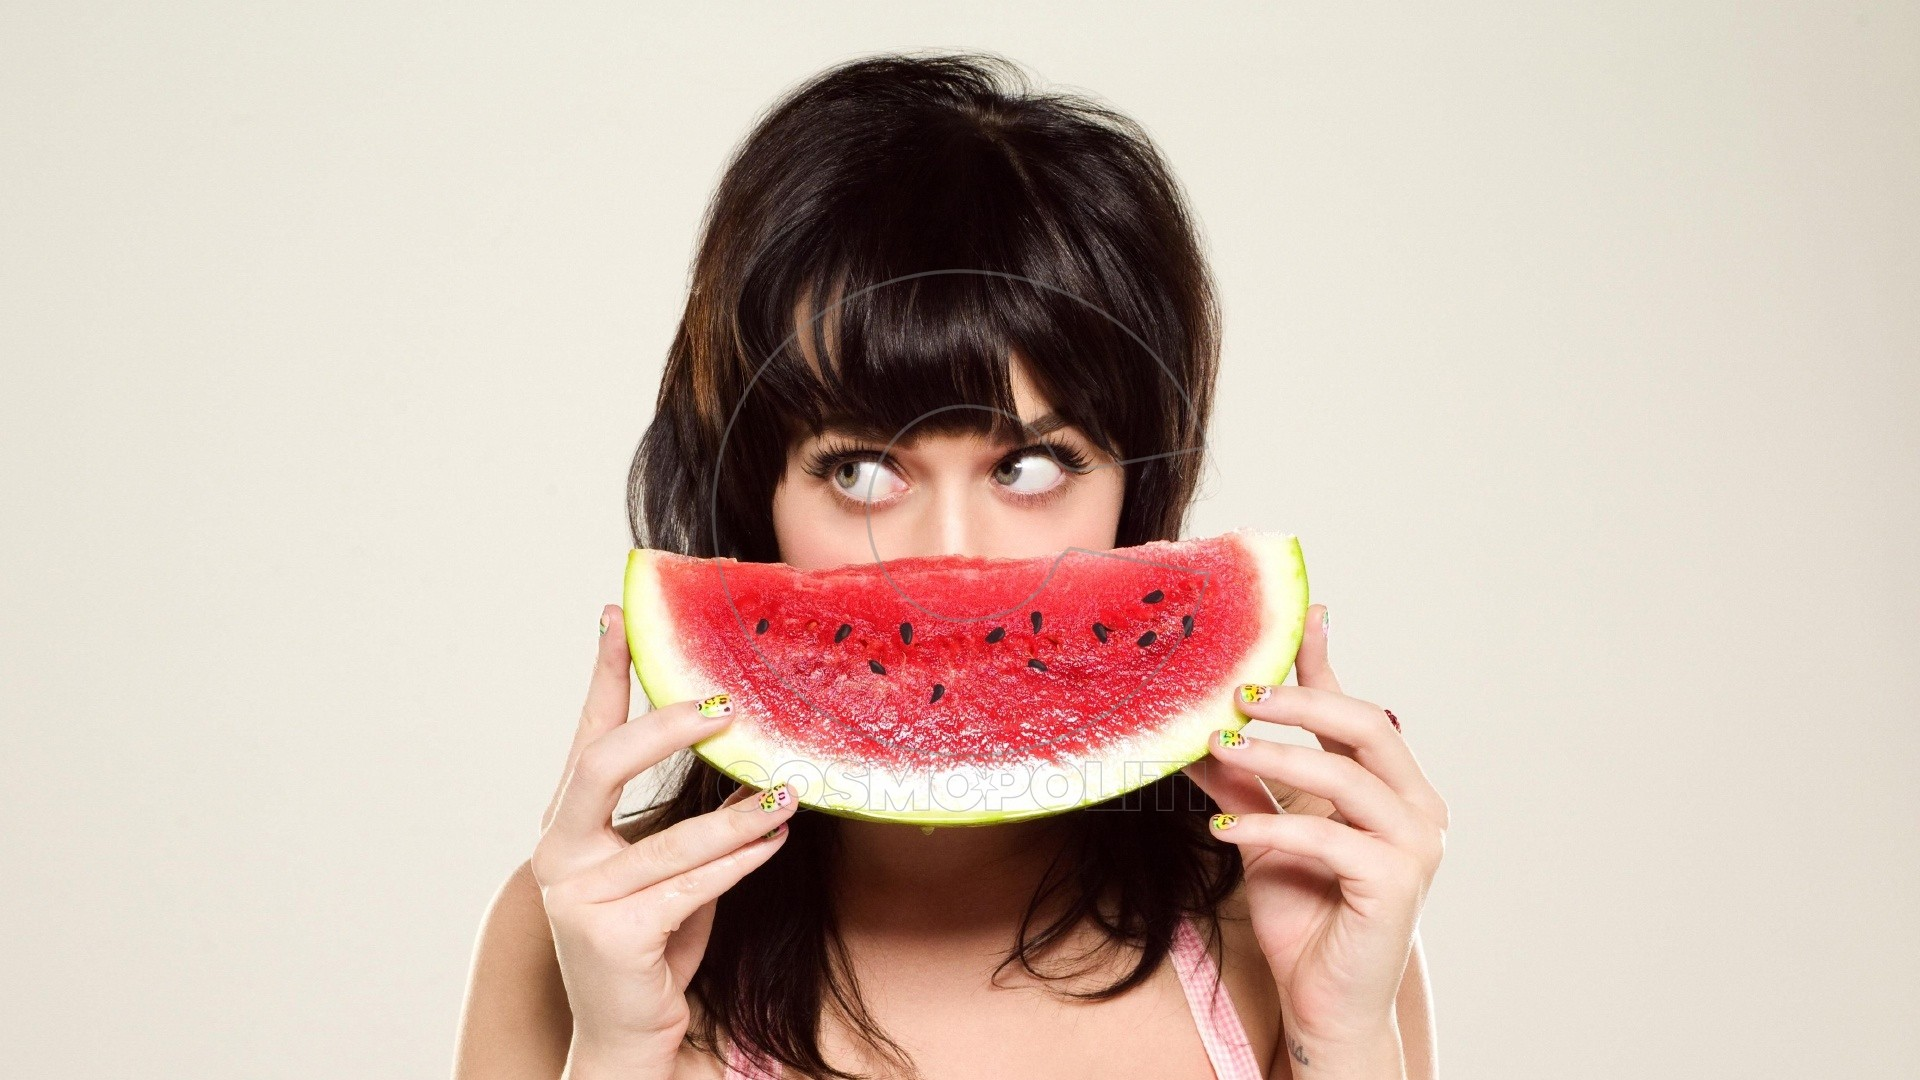 katy_perry_watermelon_girl_look_hands_3405_1920x1080